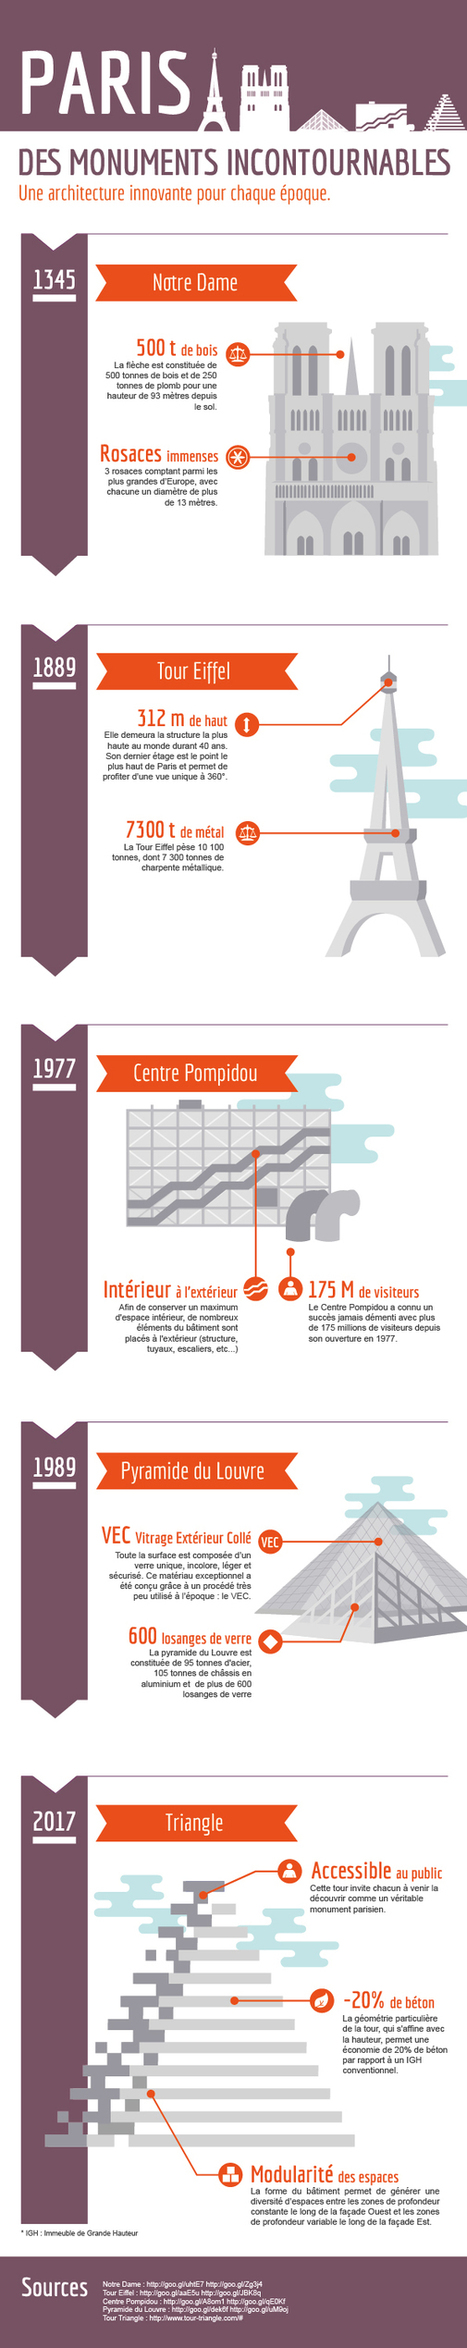 infographie-innovations-architecturales-paris-tour-triangle.jpg (595x2991 pixels) | Tour Triangle | Scoop.it